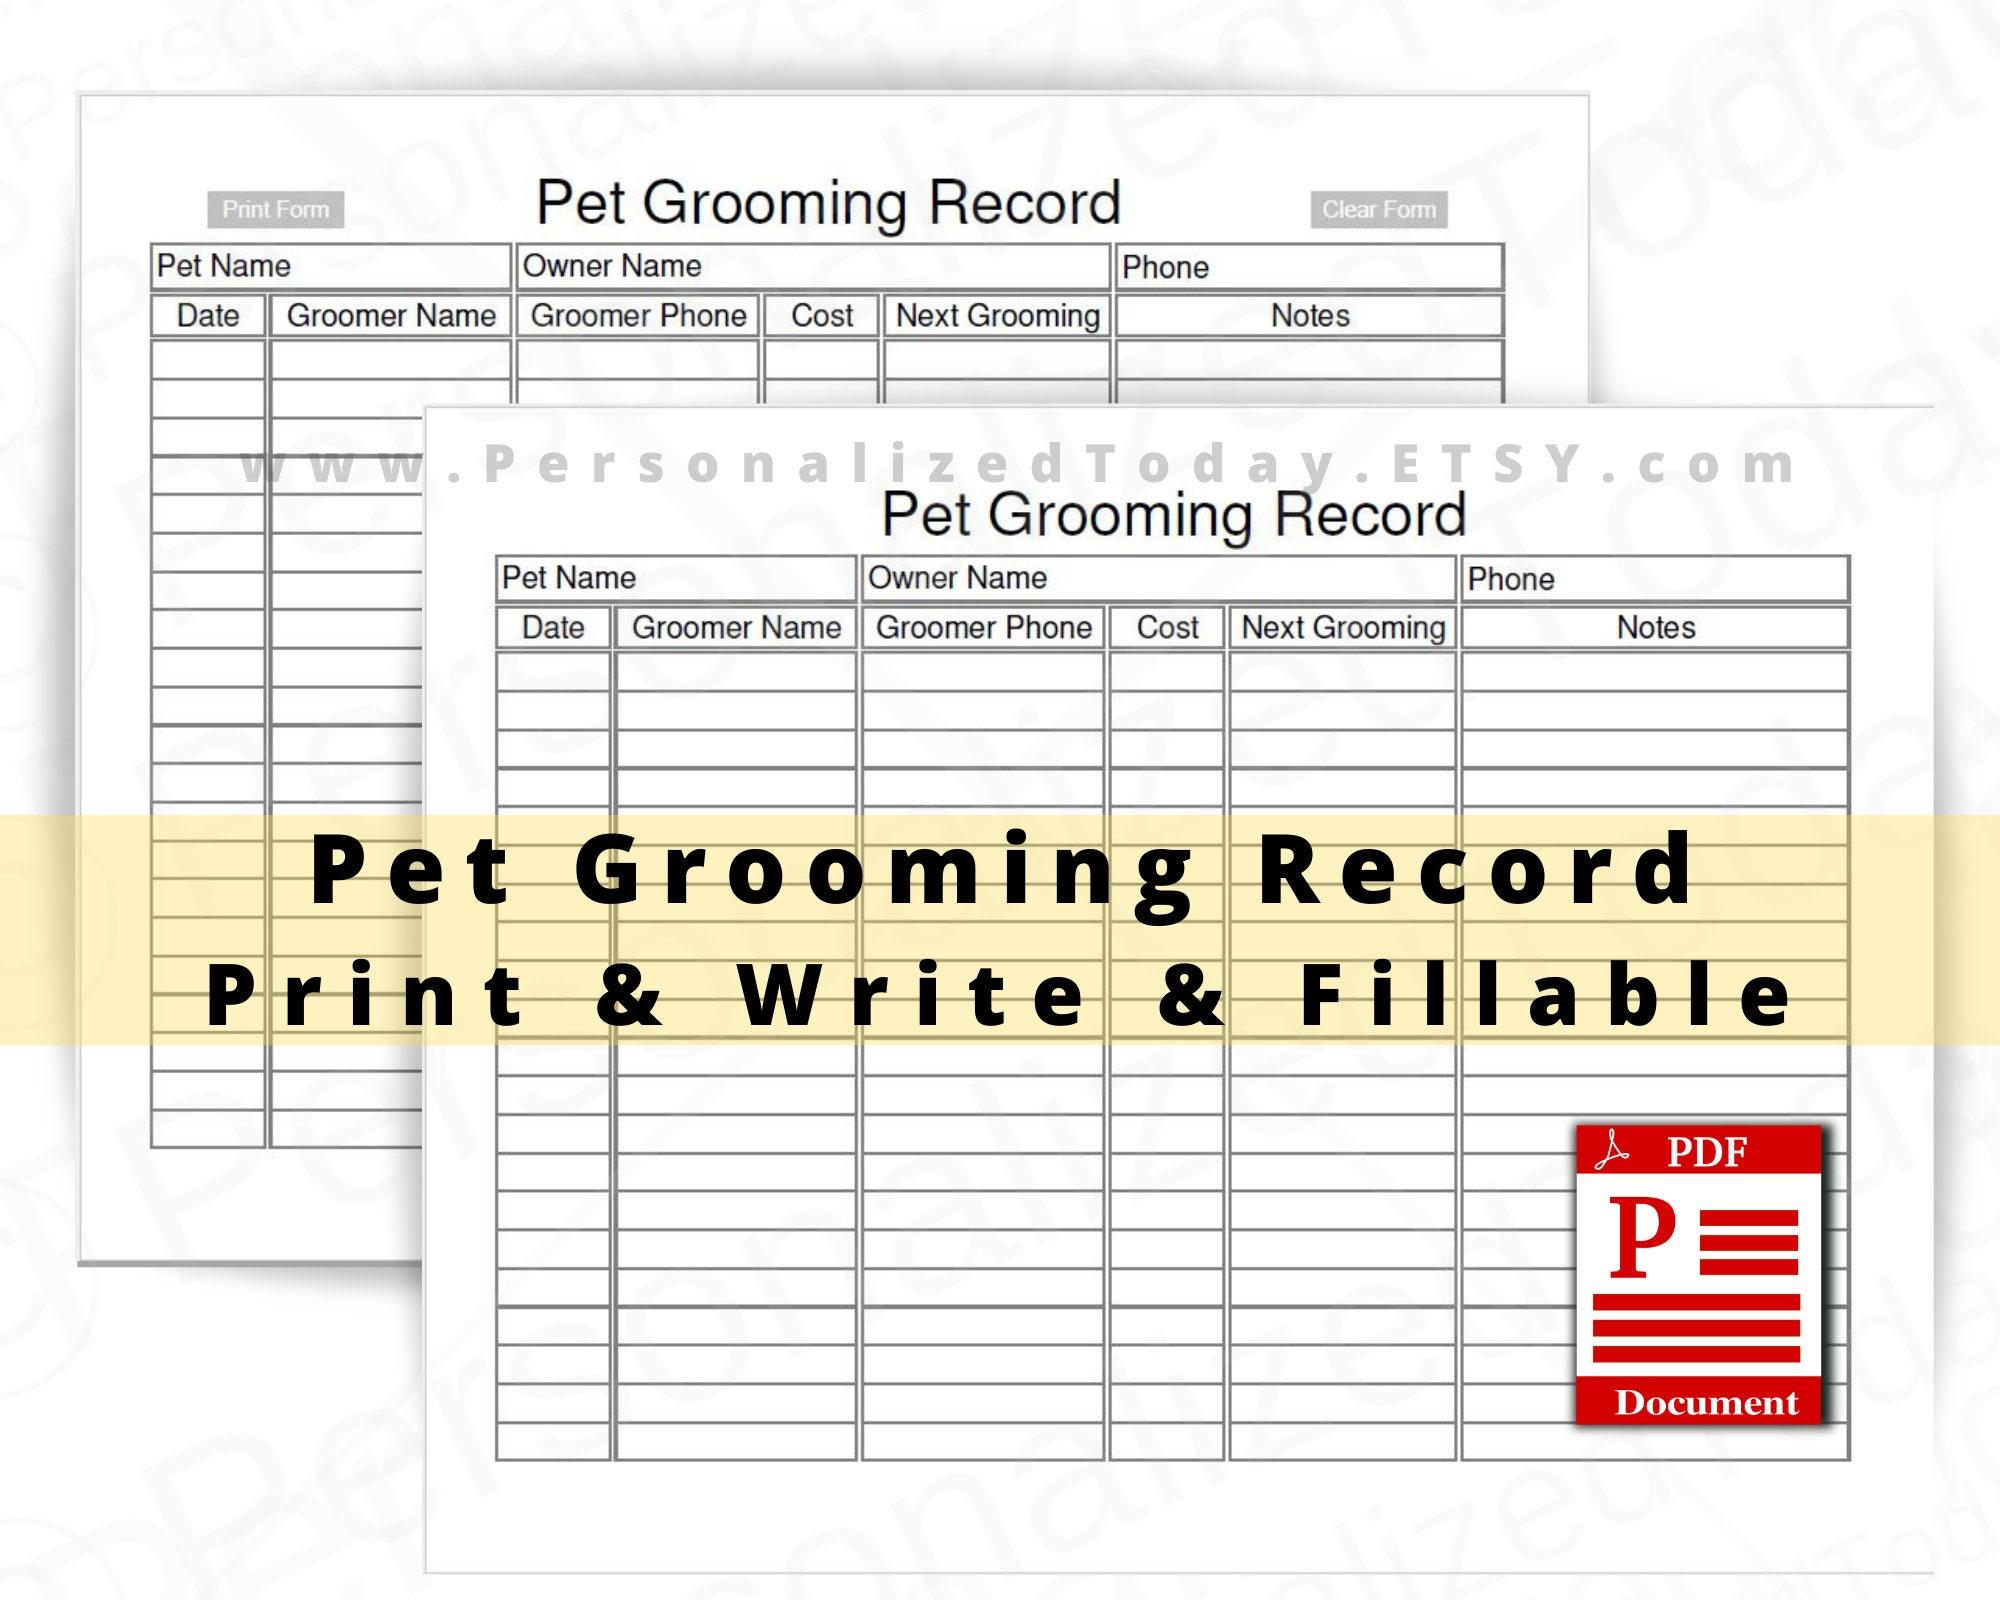 Pet Grooming Record Fillable and Print and Write PDF Files US  Etsy Intended For Dog Grooming Record Card Template